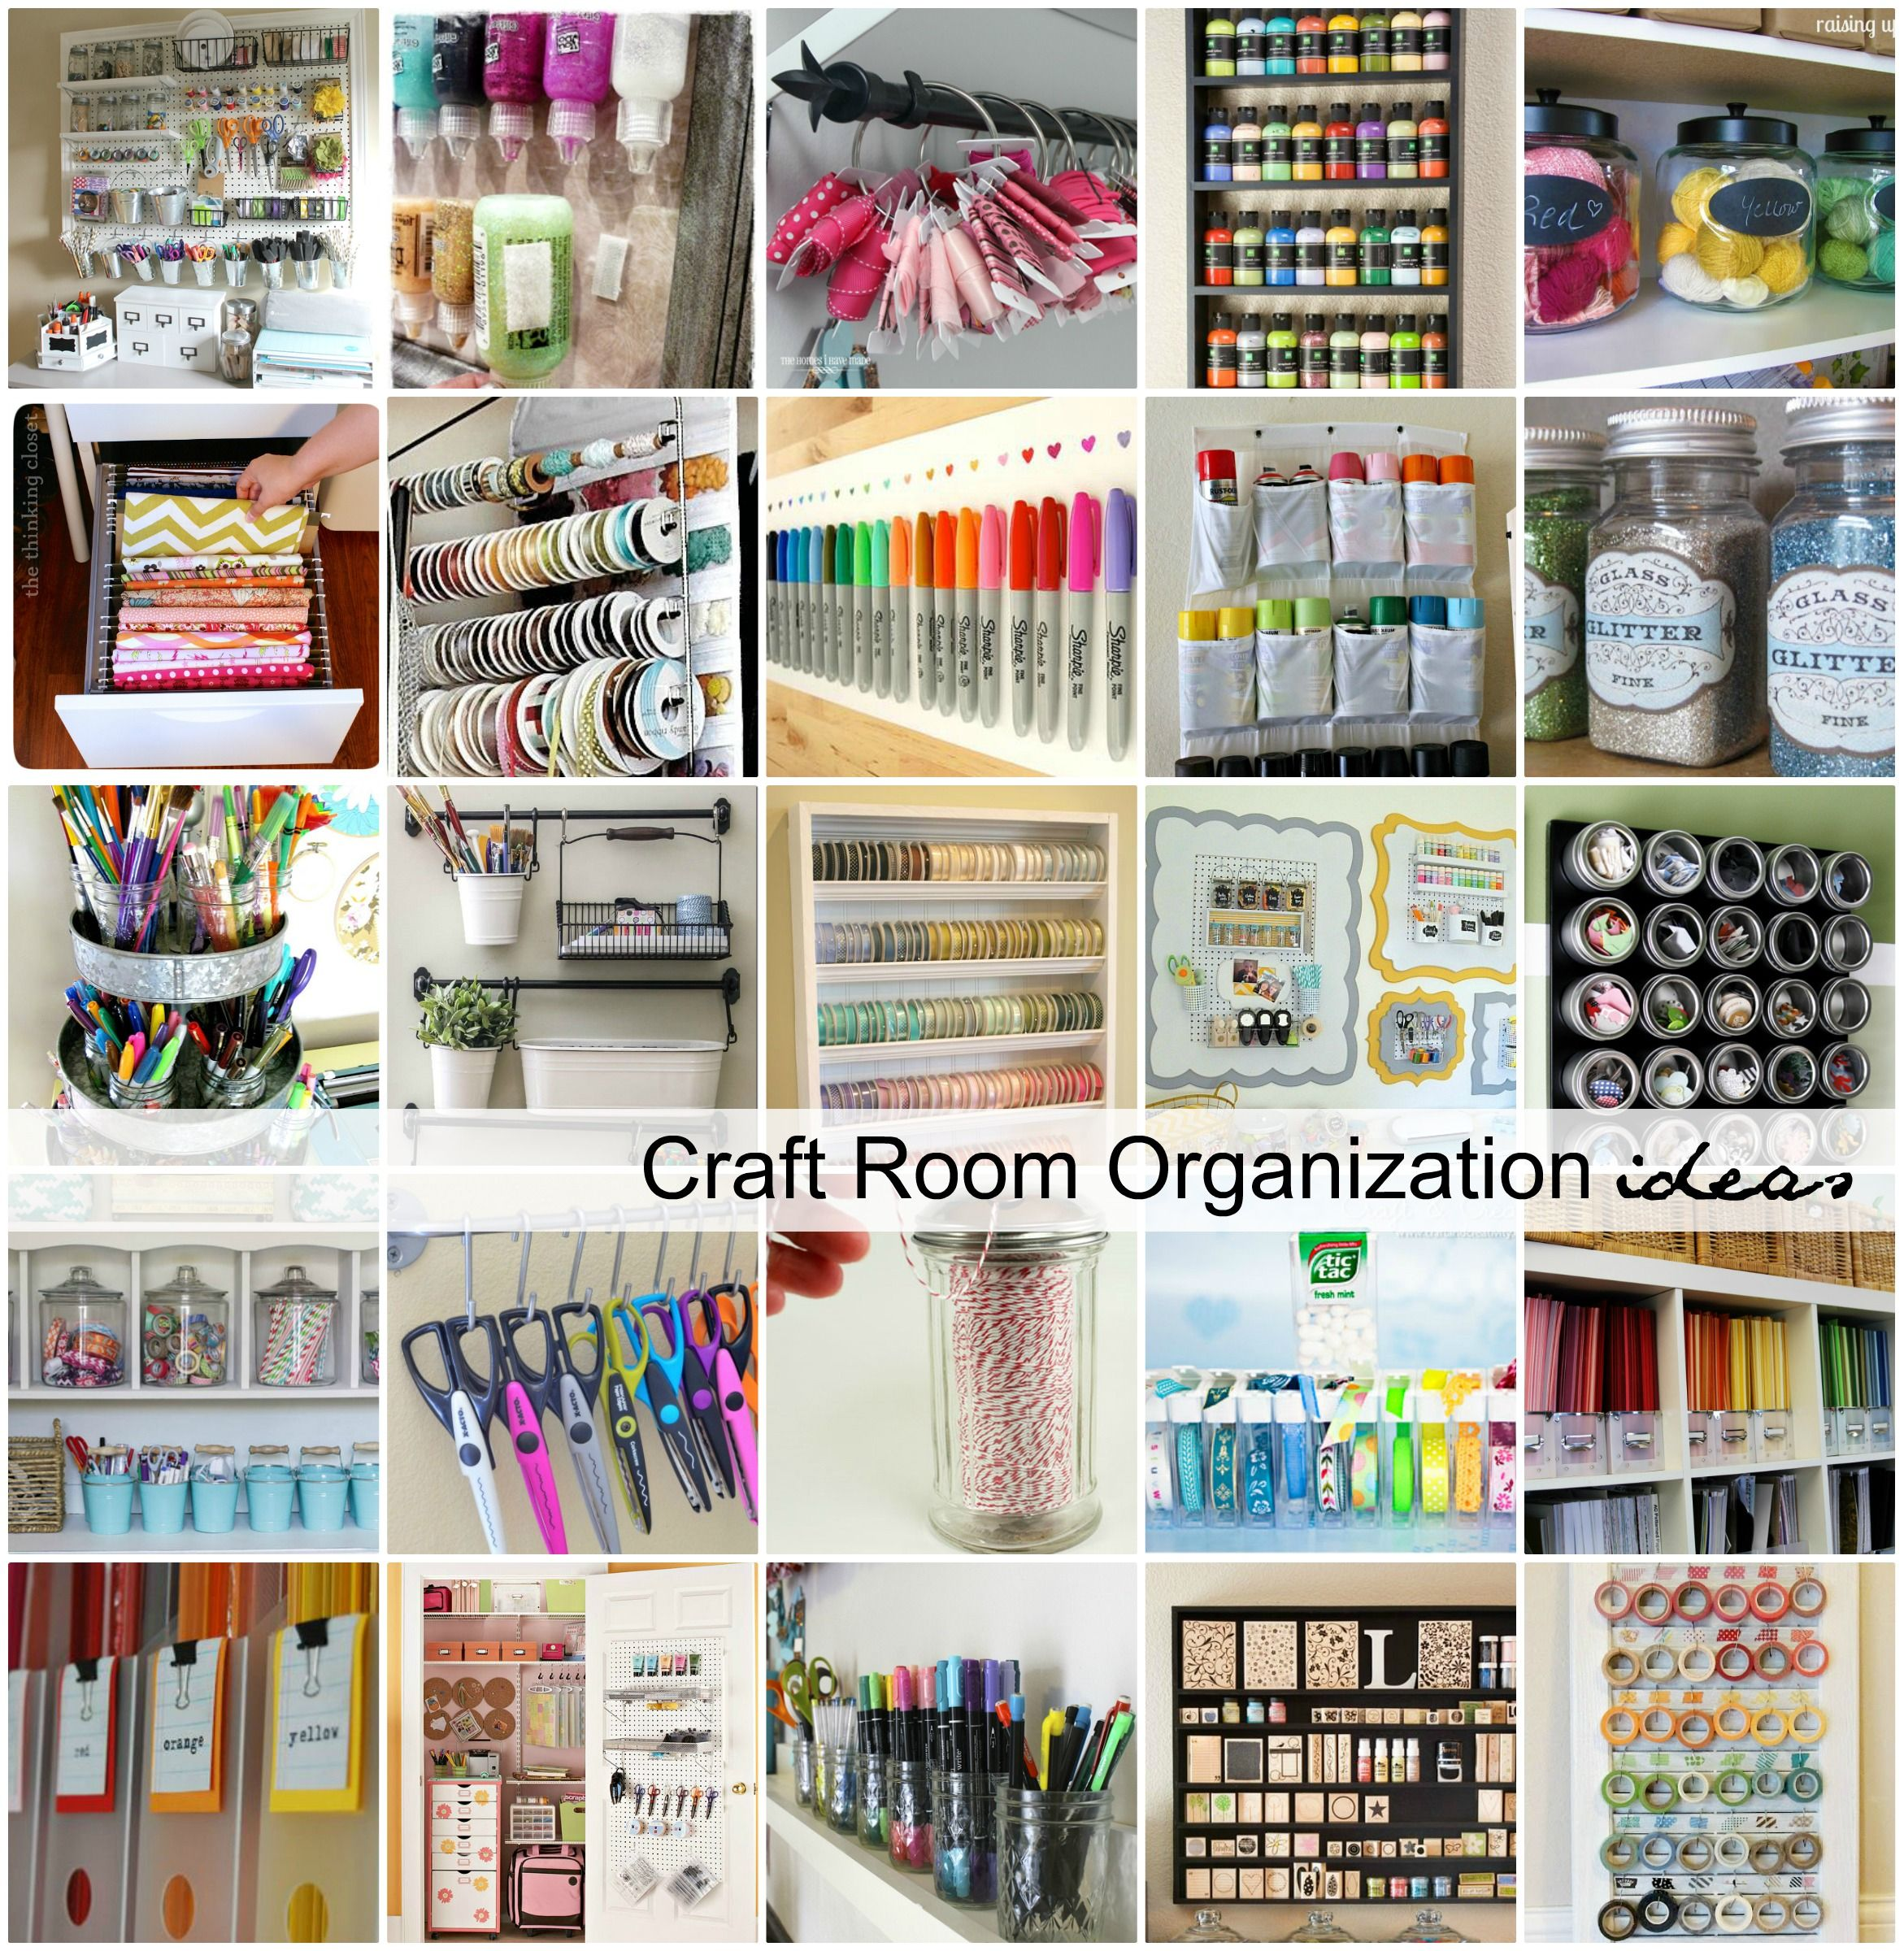 Bedroom Art Supplies: Craft Room Organization And Storage Ideas